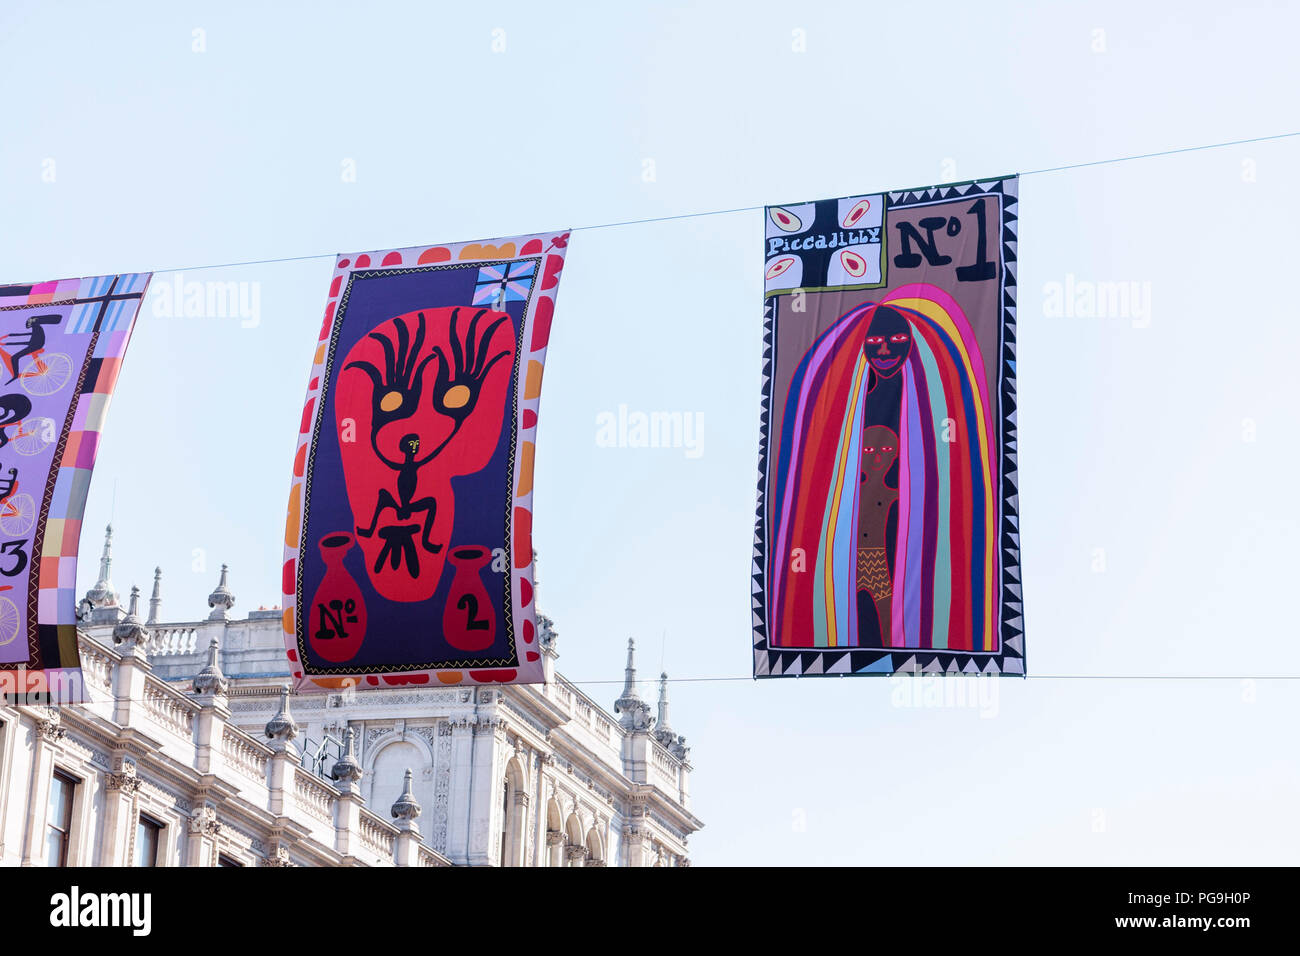 Artwork by Grayson Perry hanging outside the Royal Academy furing their Summer Exhibition. London, 2018 - Stock Image